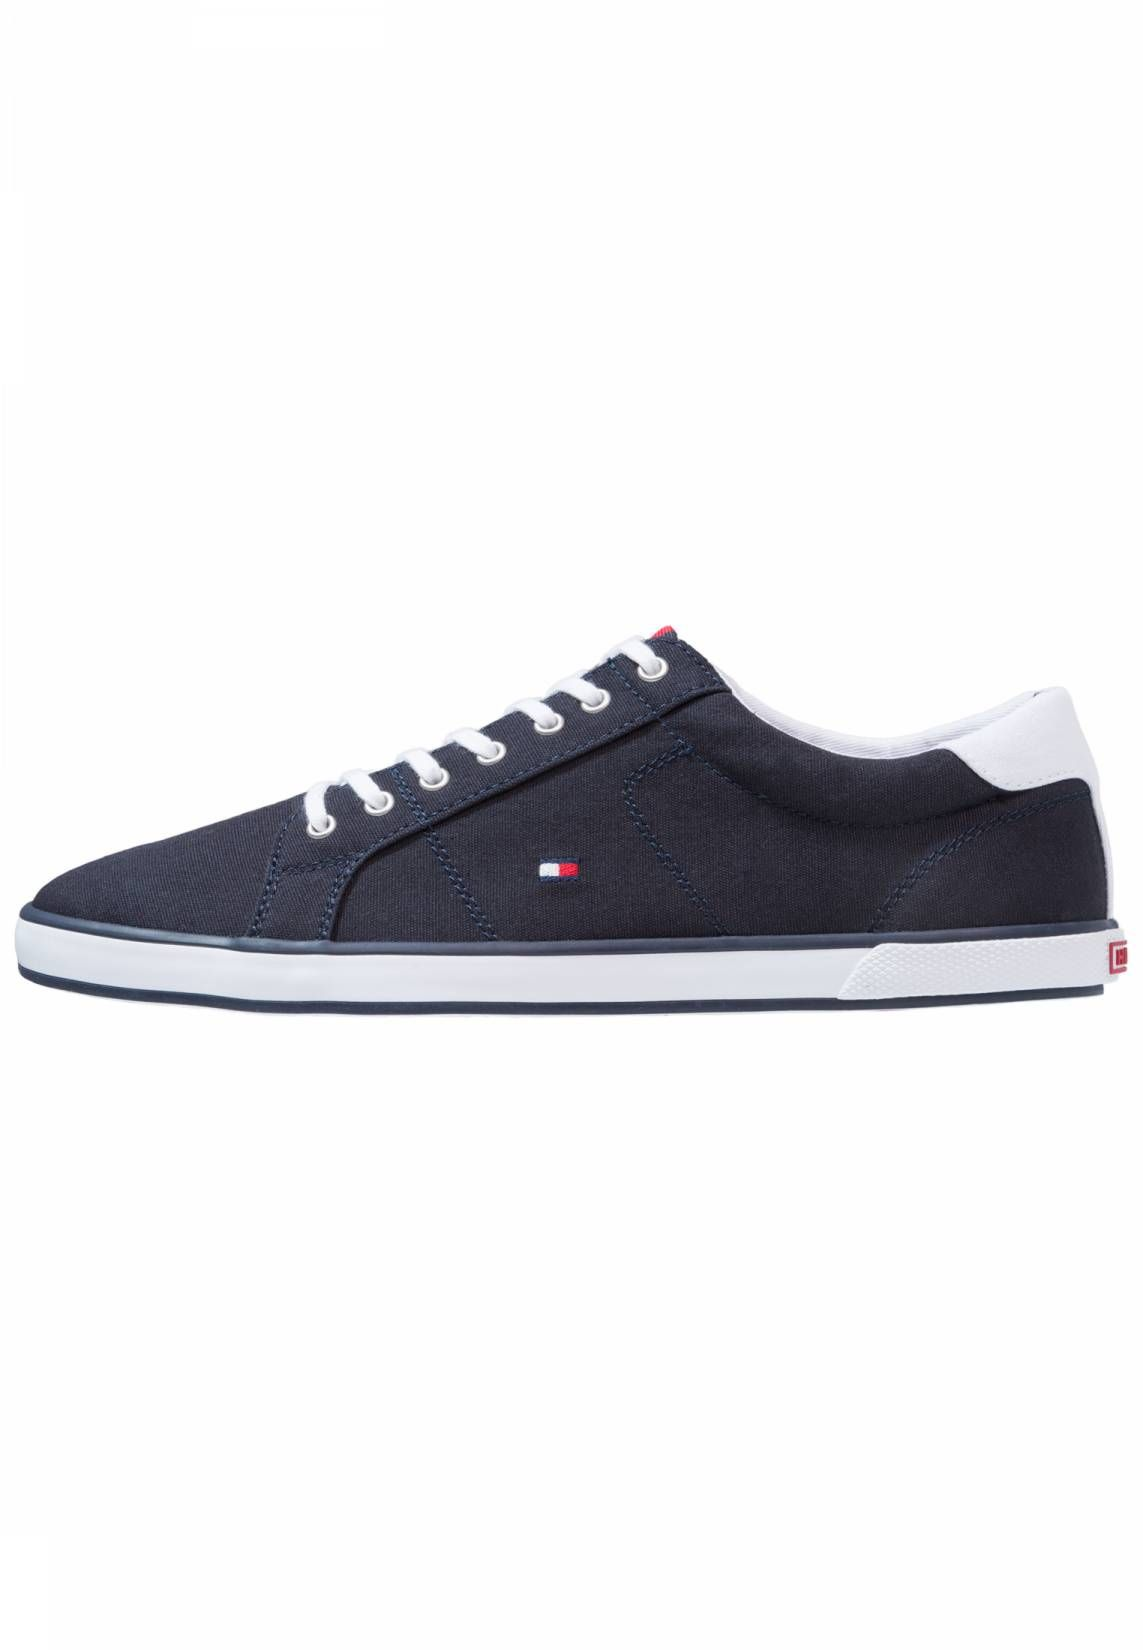 HARLOW - Zapatillas - white/red/blue ONLCROWN - Sandalias de tacón - silver FLEX 3.0 - Mocasines - grey CLASSIC - Zapatillas - black/White V8SHktW